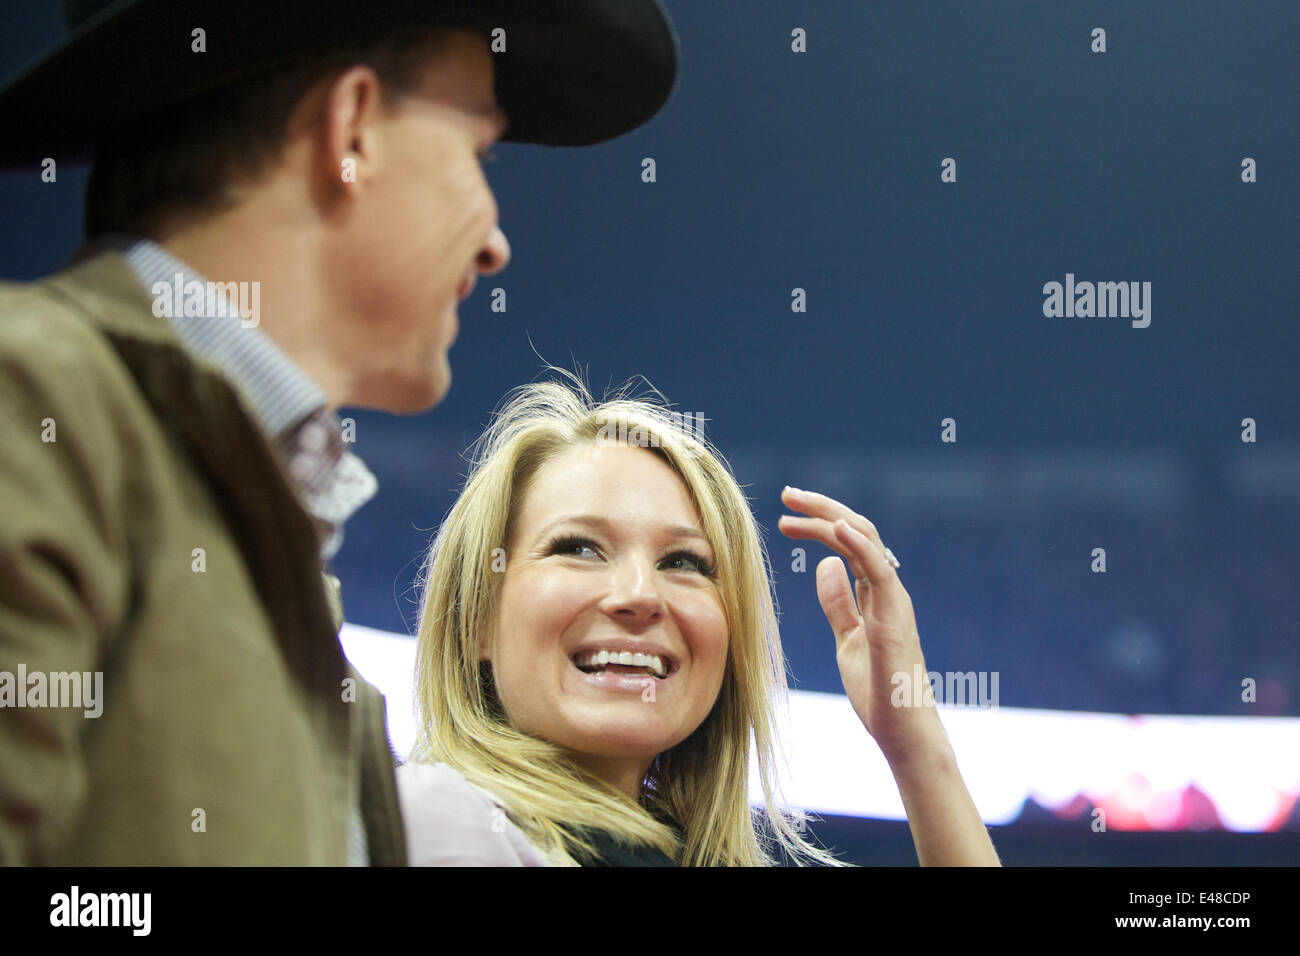 July 2, 2014 - Singer JEWEL and her rodeo cowboy husband TY MURRAY are divorcing after 16 years. The 40-year-old Stock Photo